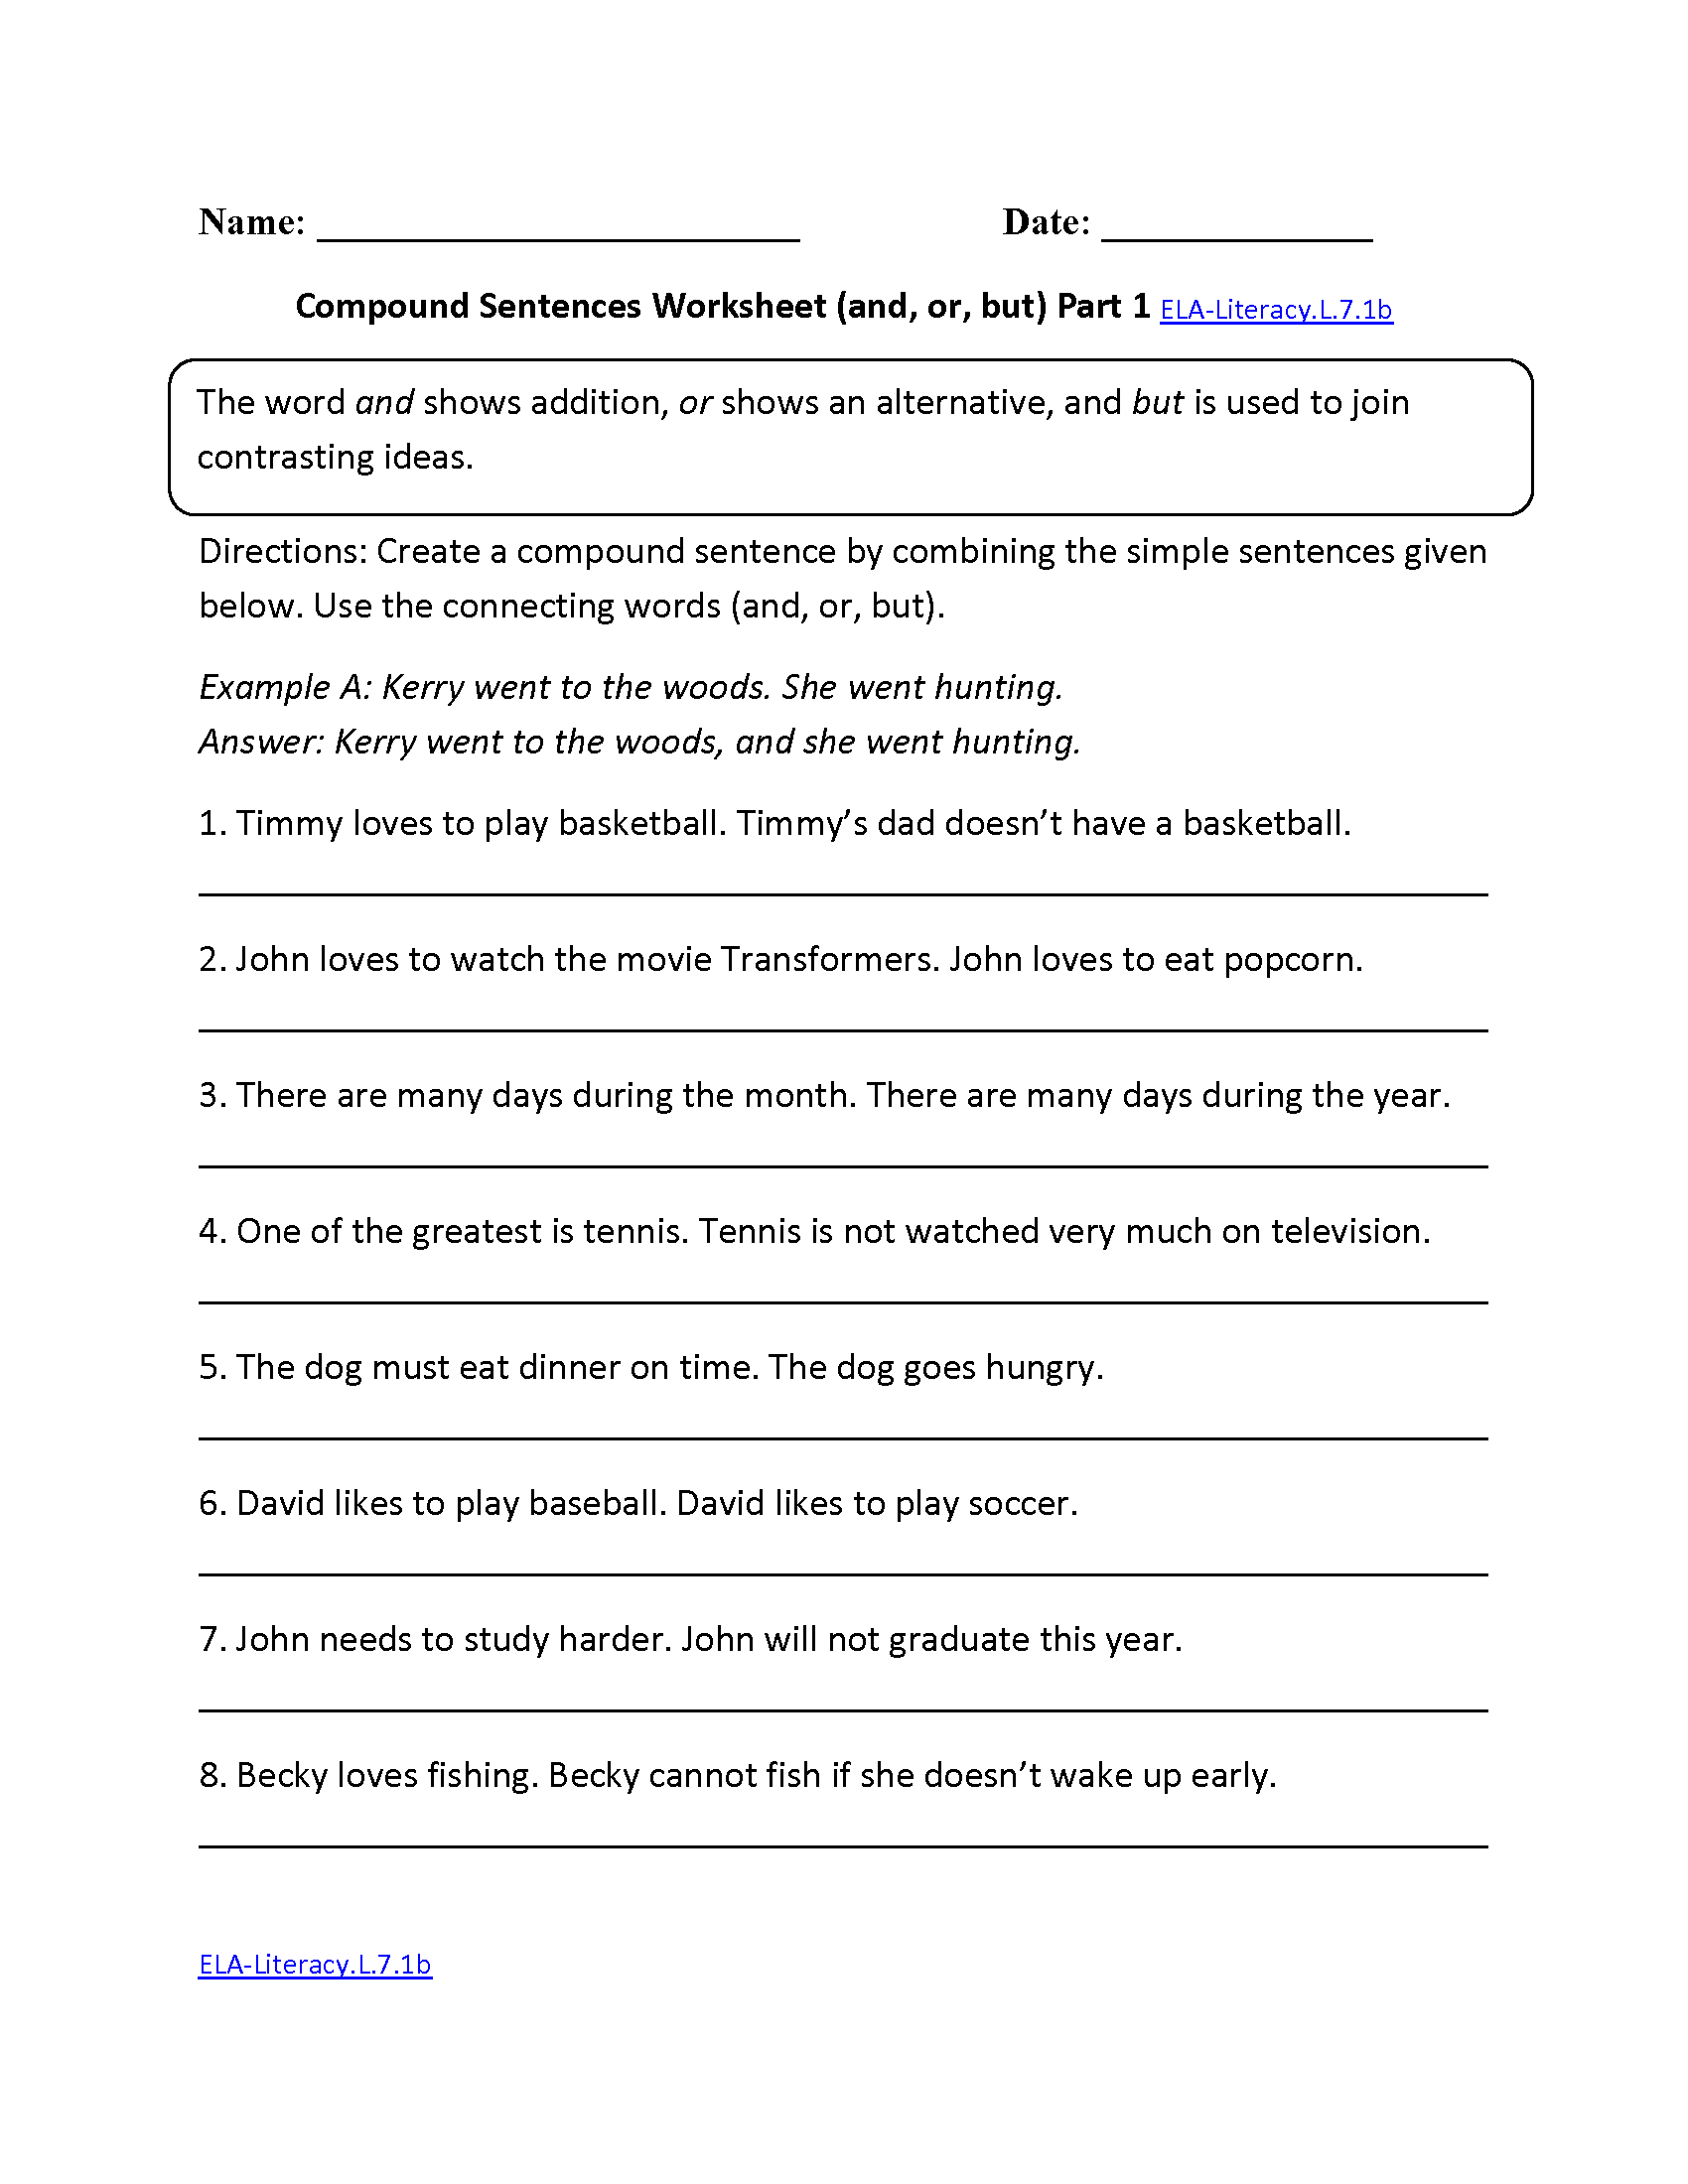 Worksheets 7th Grade Spelling Worksheets 7th grade common core language worksheets compound sentences worksheet ela literacy l 7 1b worksheet